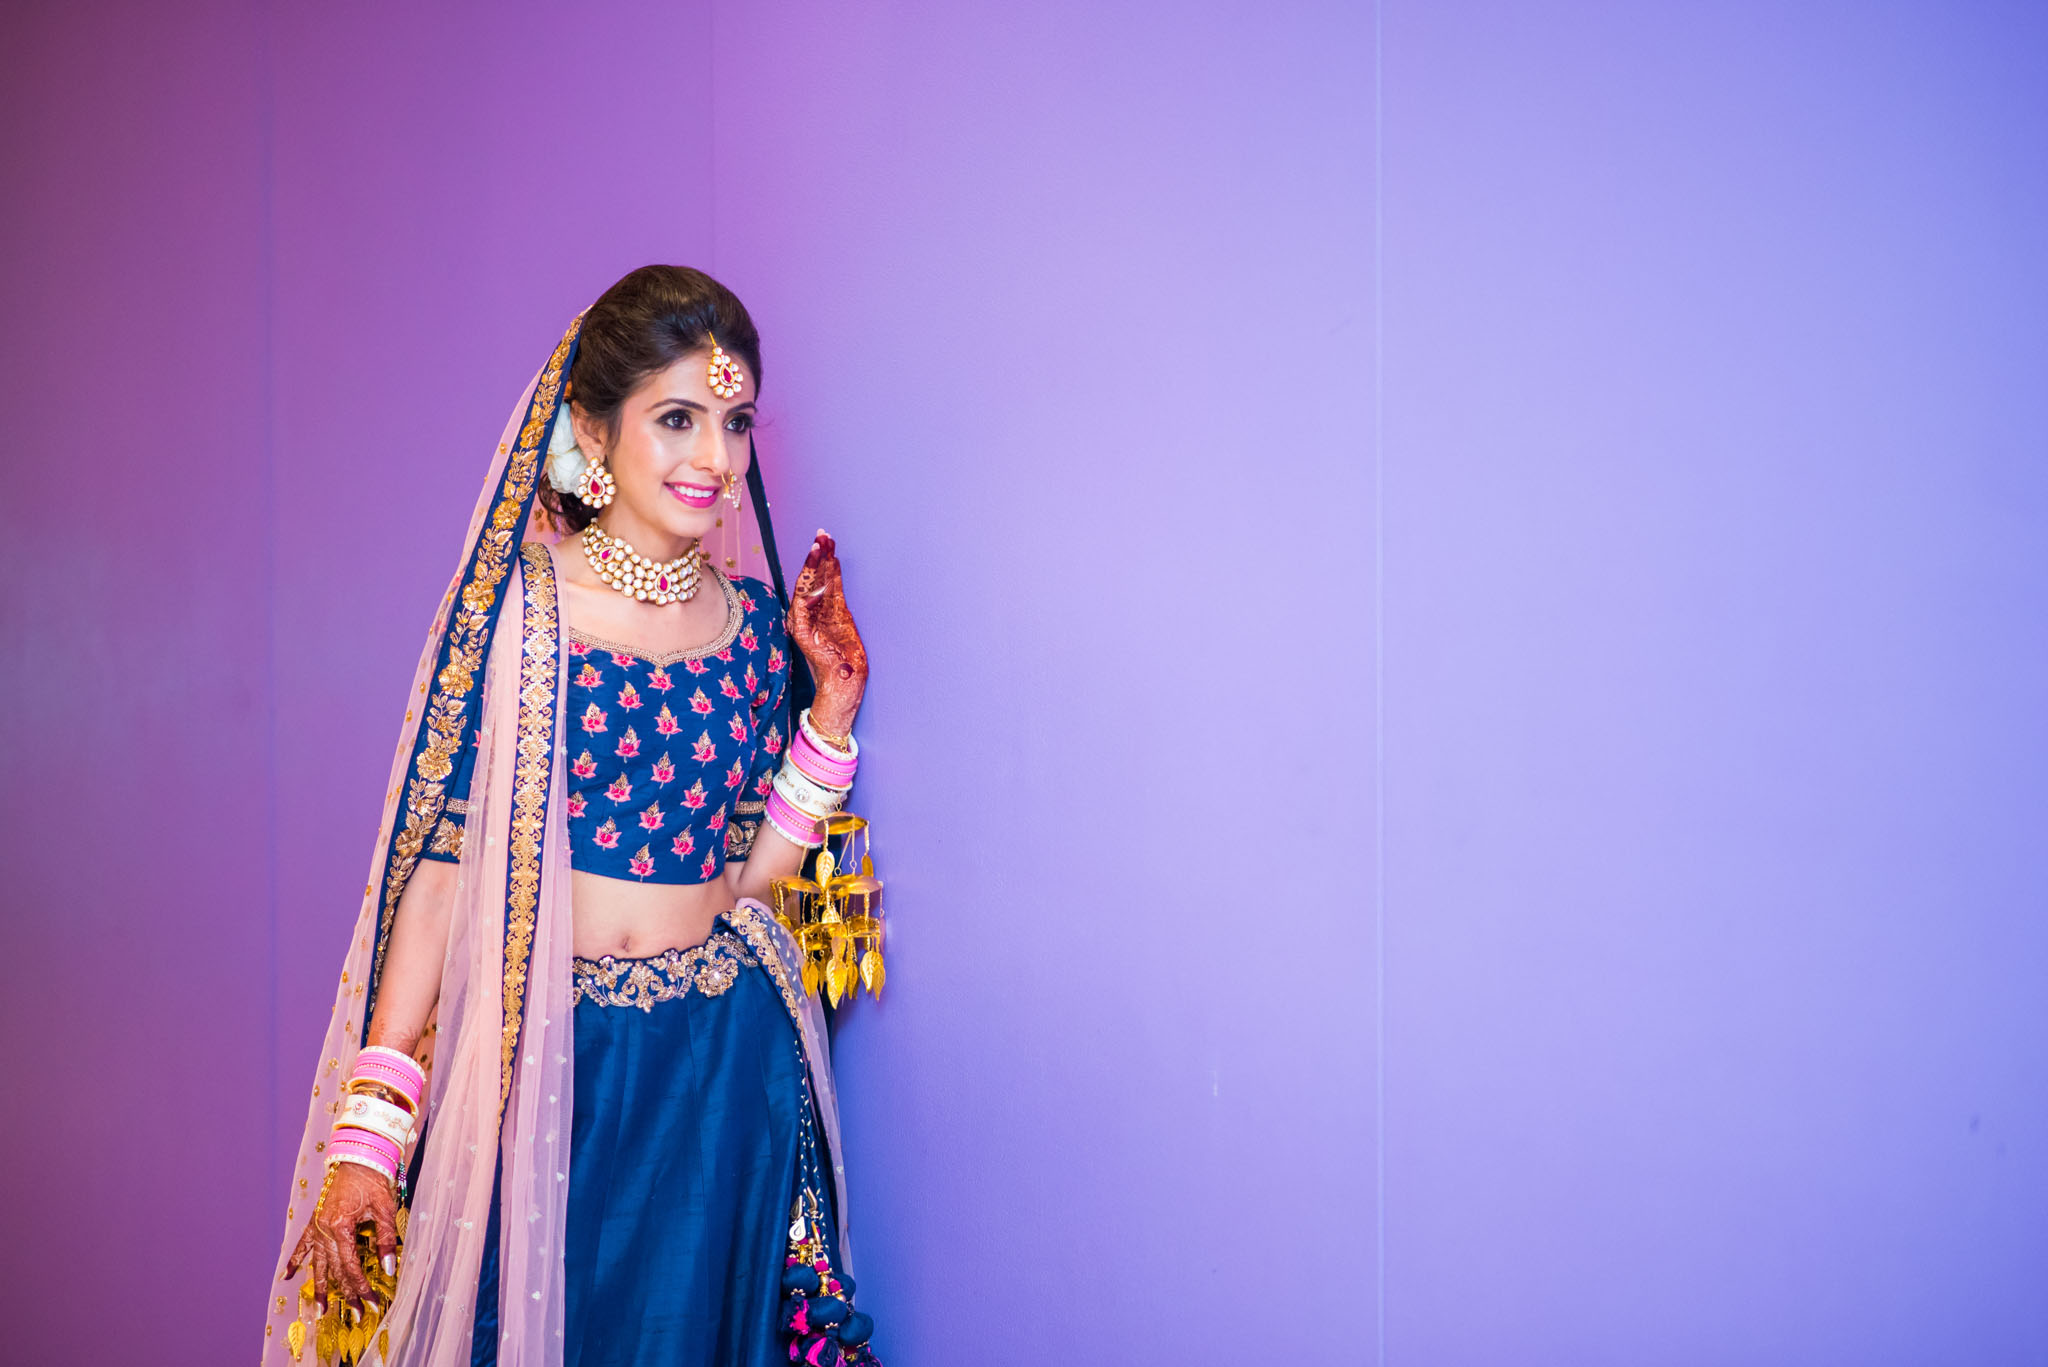 Makeup-room-bride-lehenga-whatknot-photography-127